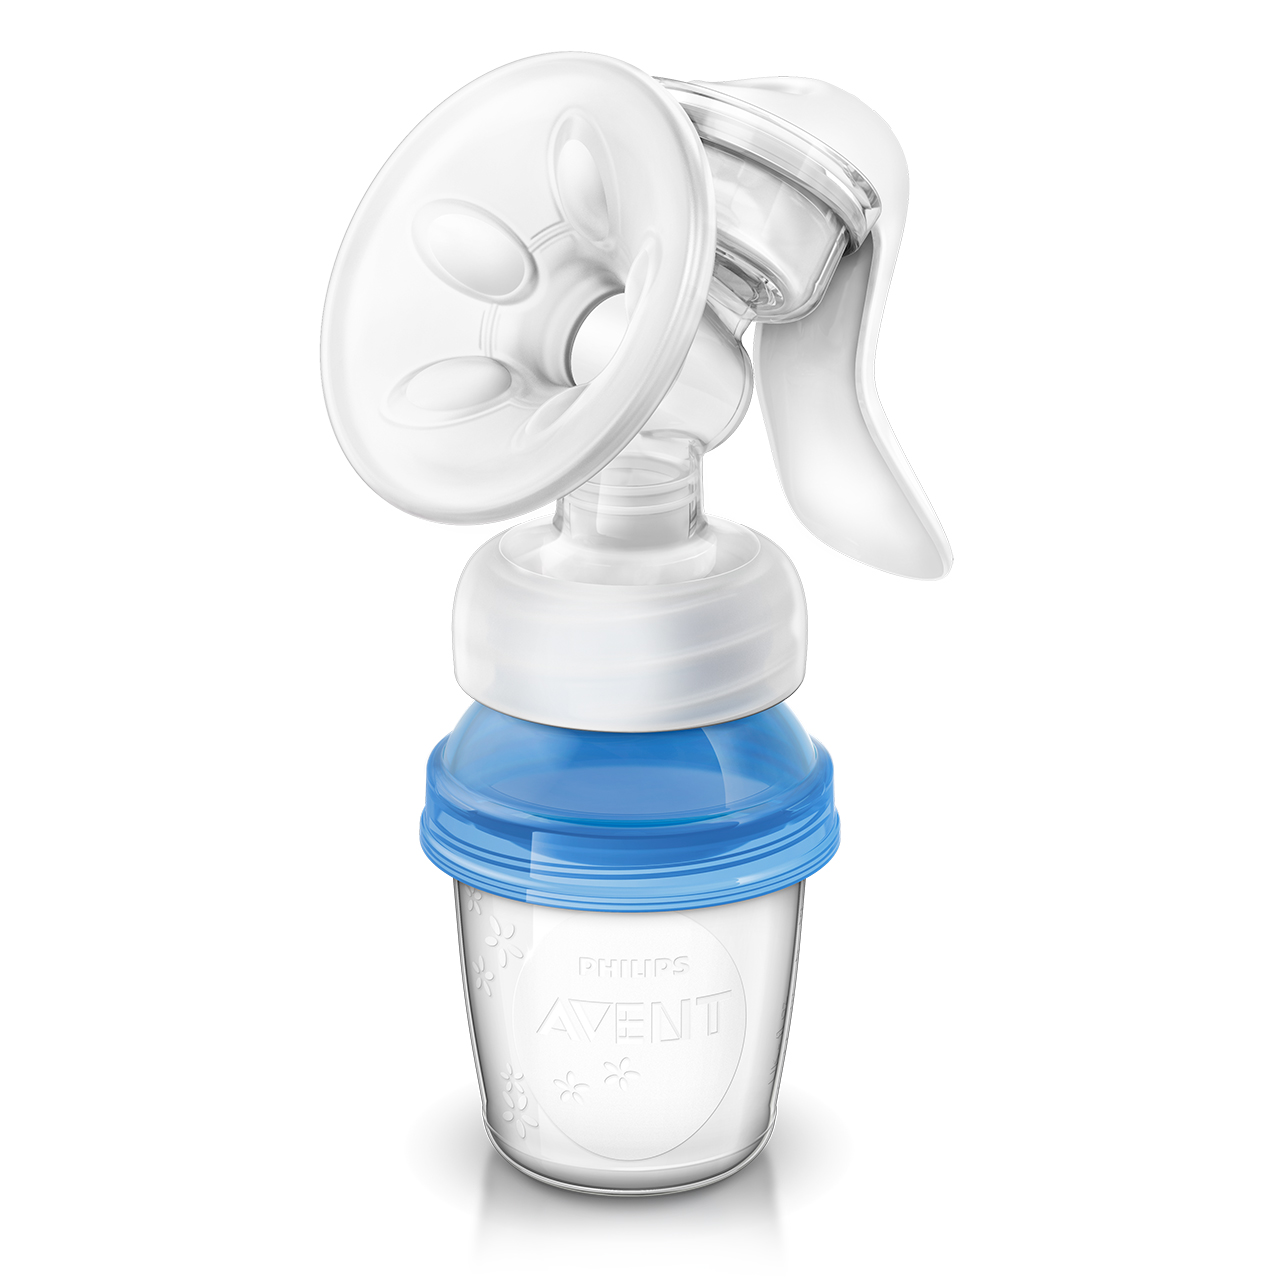 Avent Comfort Manual Breast Pump with VIA